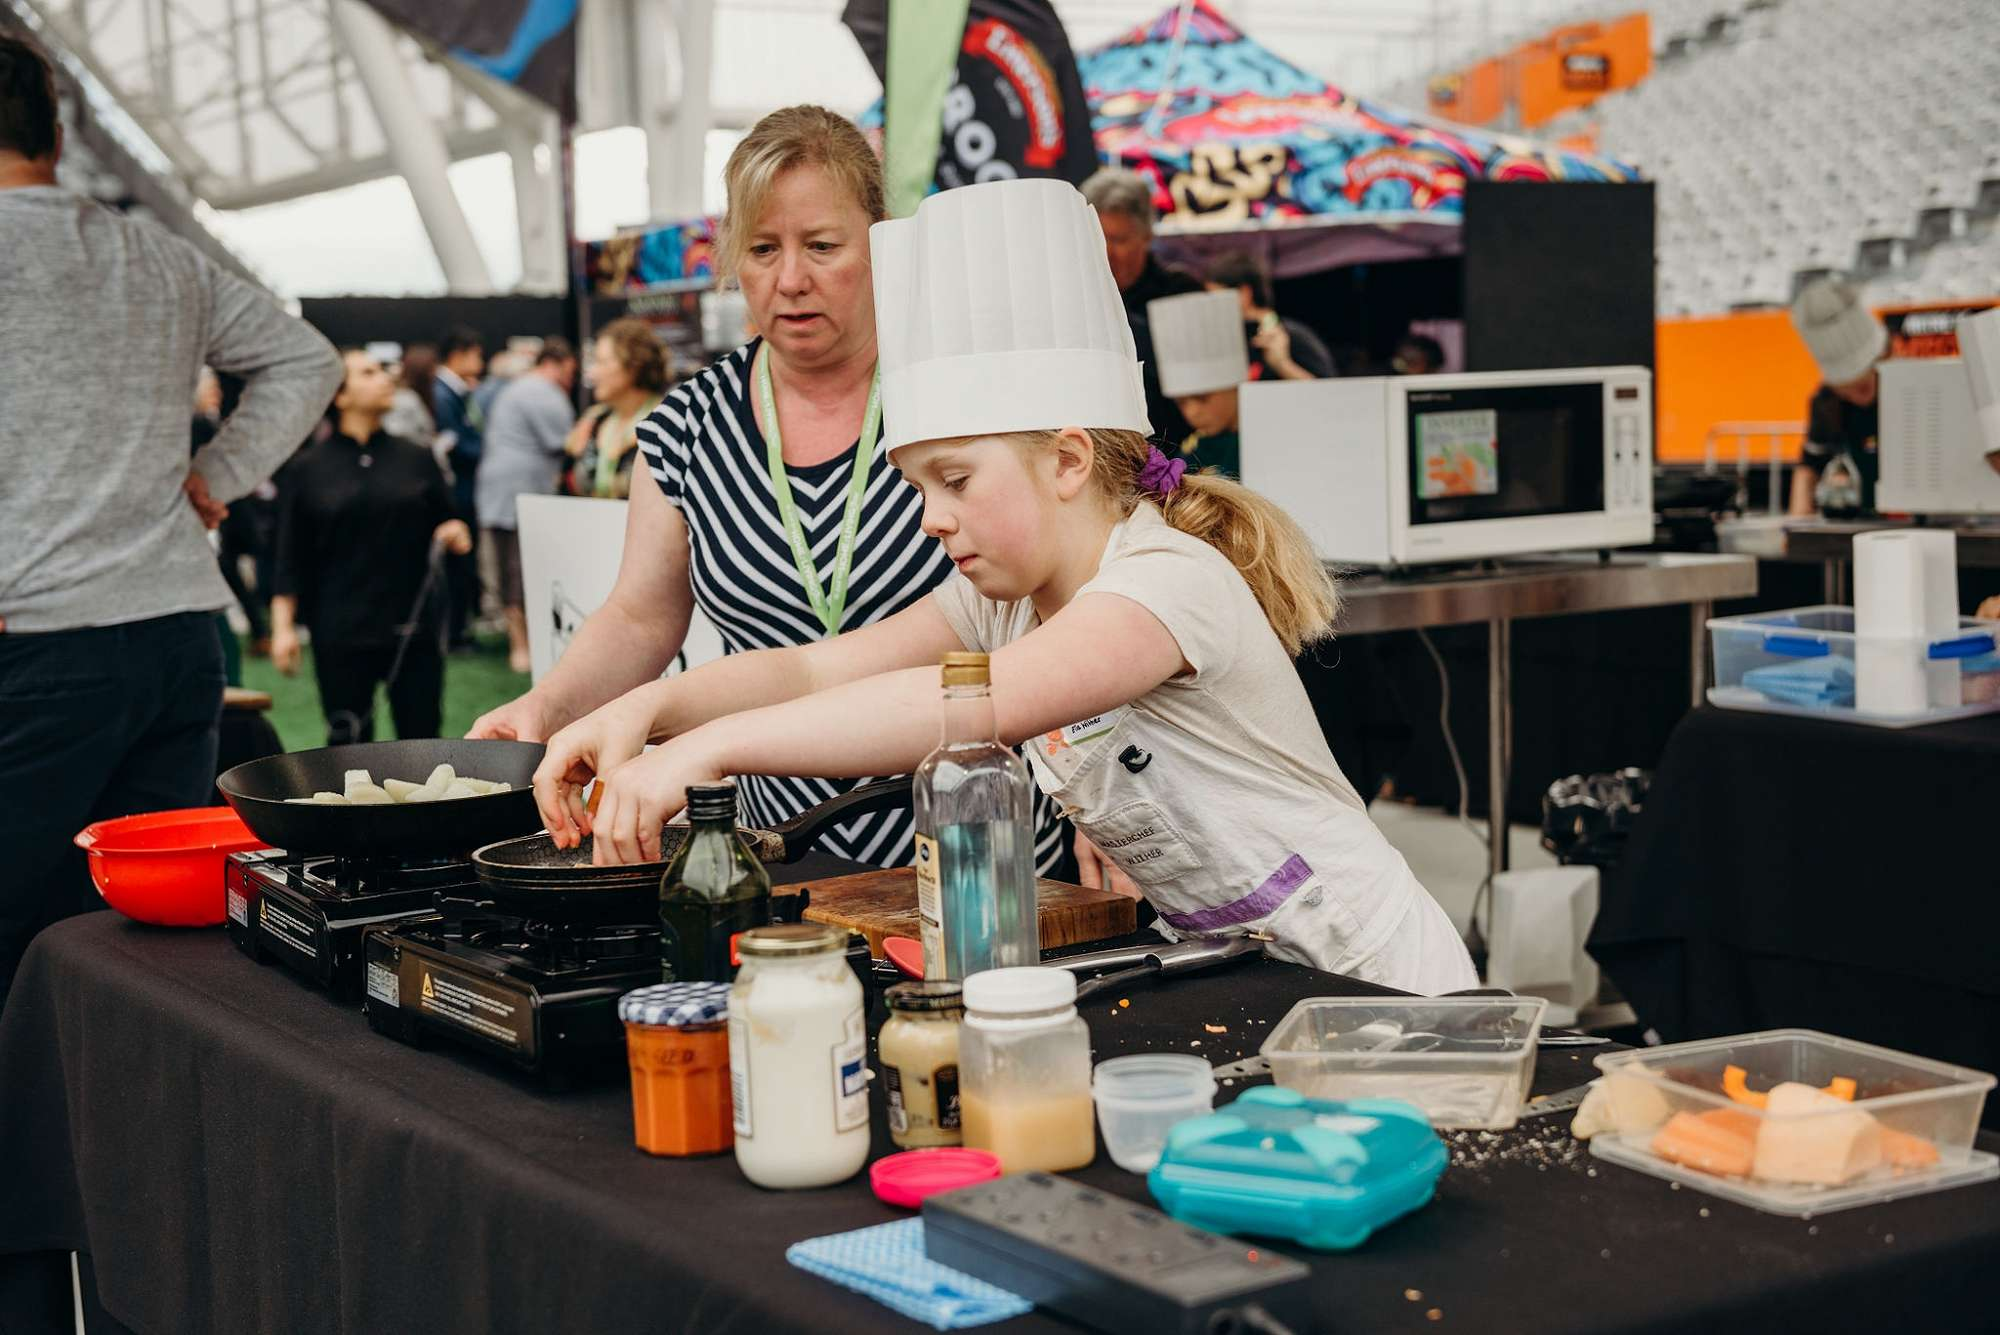 The competition was hot in Kiwi Kids Can Cook